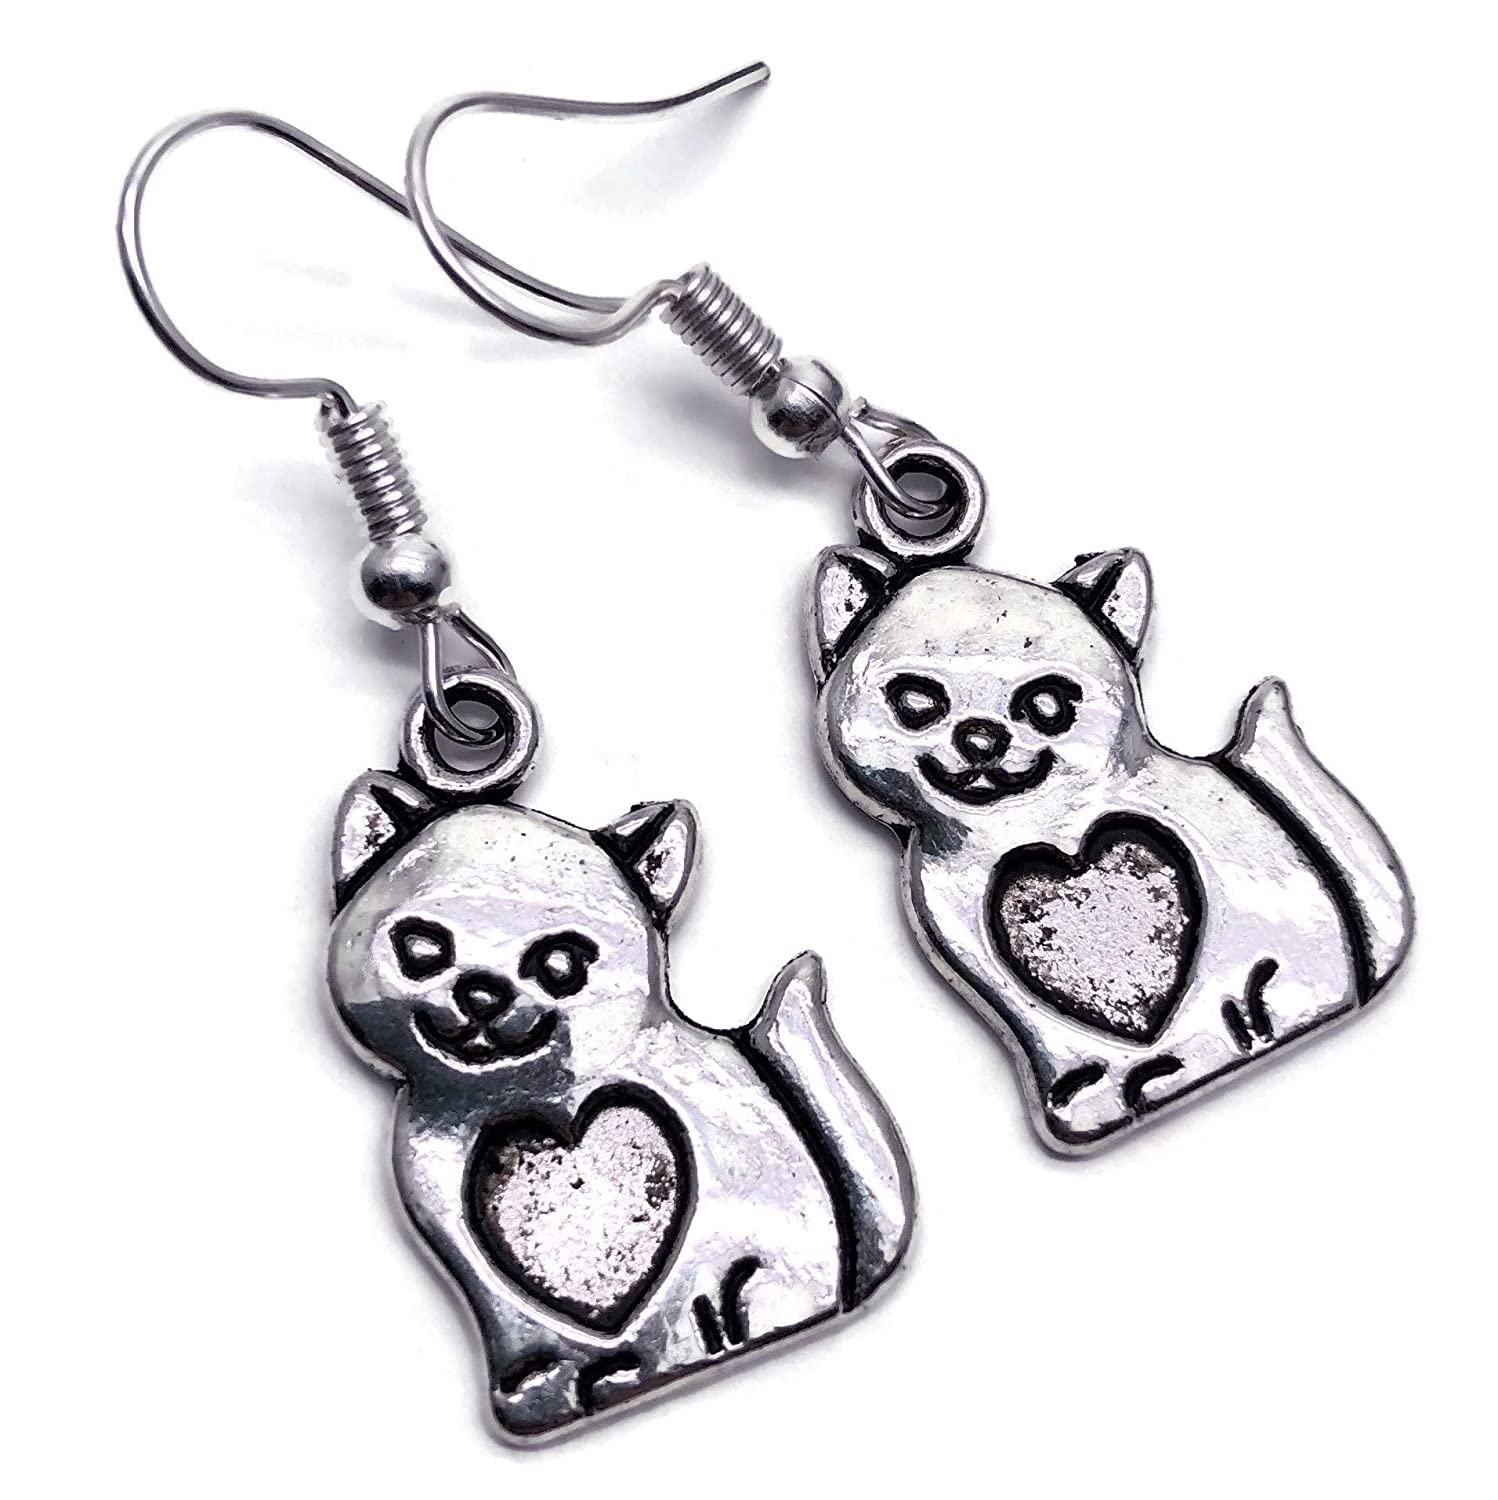 Curly Tail Kitty Cat Charm Earrings Tibetan Silver Charms on Nickel Free Hooks